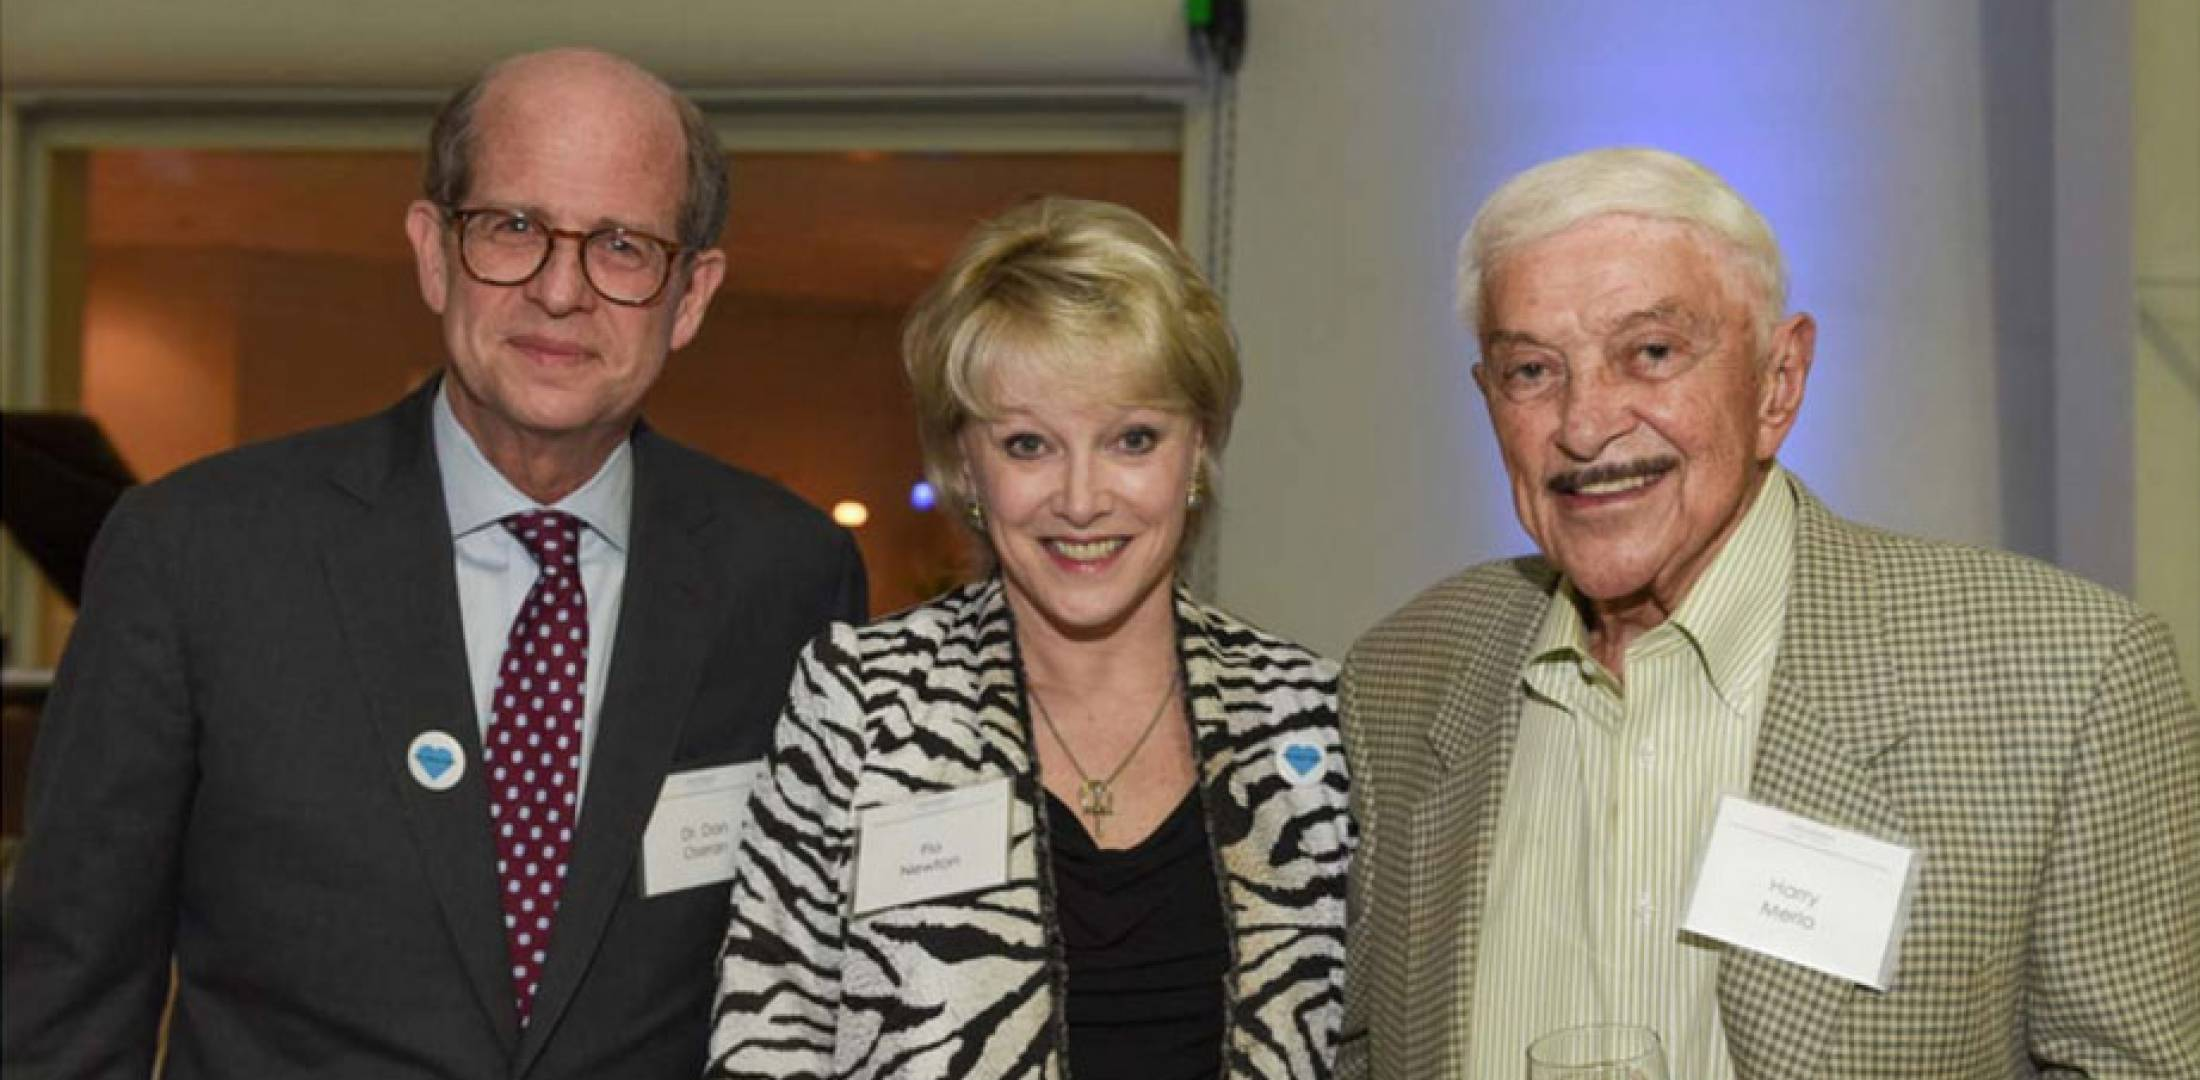 Left to right: Dr. Dan Oseran, Global Aviation founder and president Flo Newton and Harry Merlo at  Global Aviation's annual fundraising event for the Providence Heart and Vascular Institute.